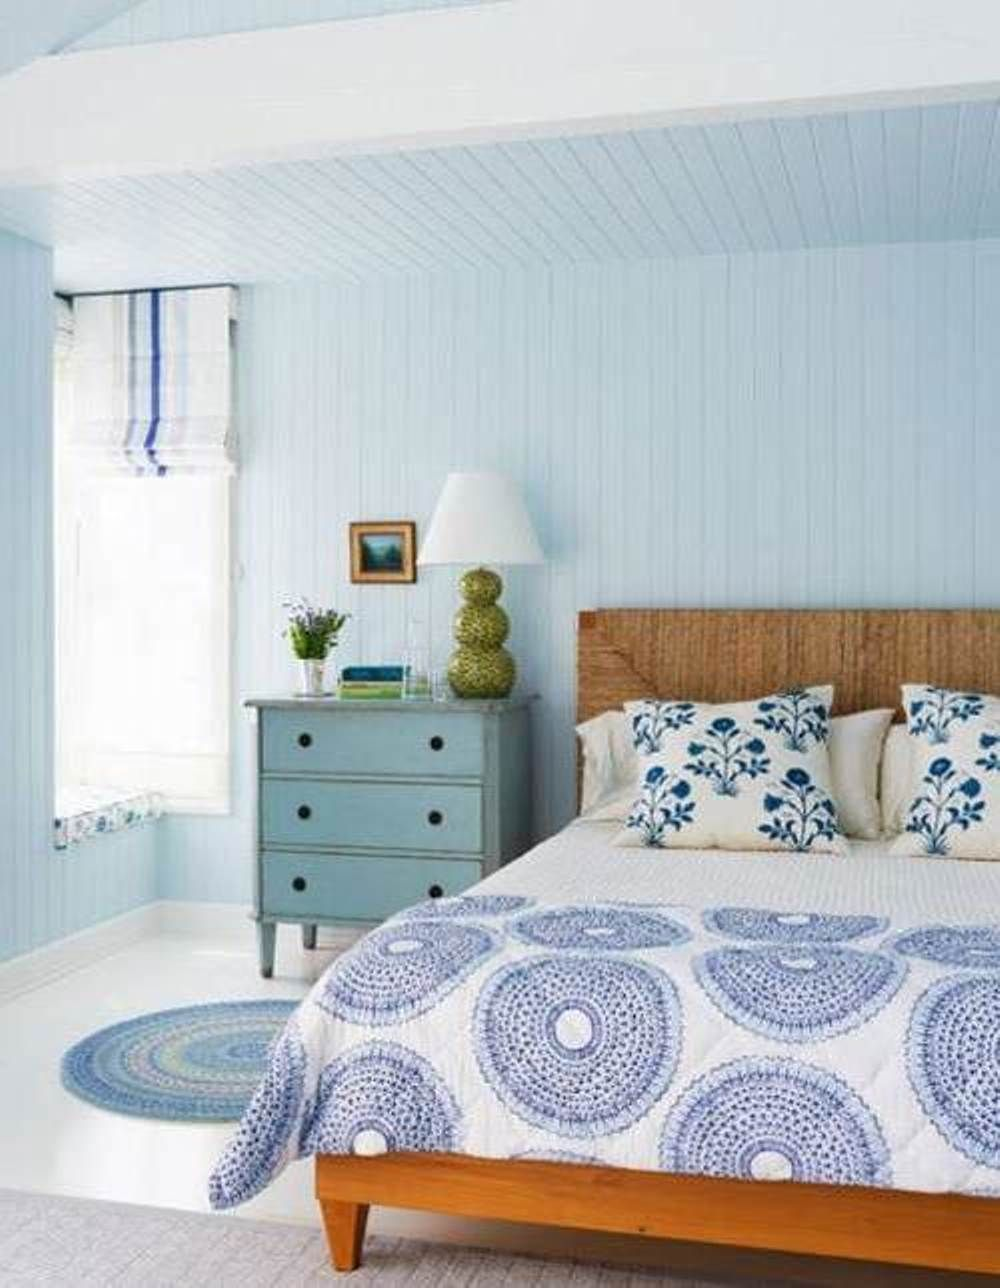 Mediumcolored wood furniture with cool blue tones in the bedroom